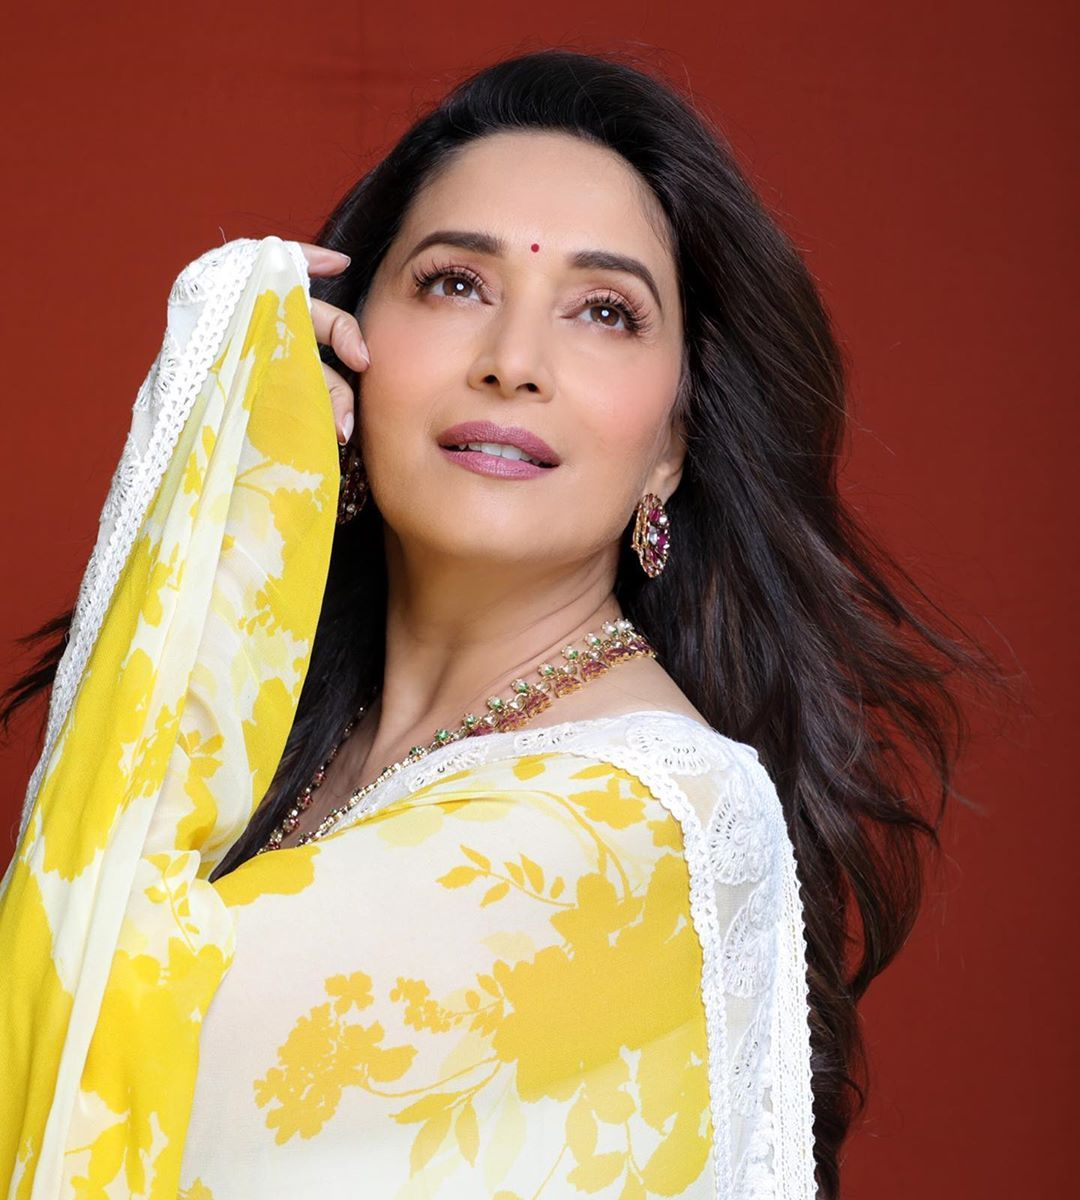 120 Madhuri Dixit Latest Pics, Full Hd Images And Photo -5514